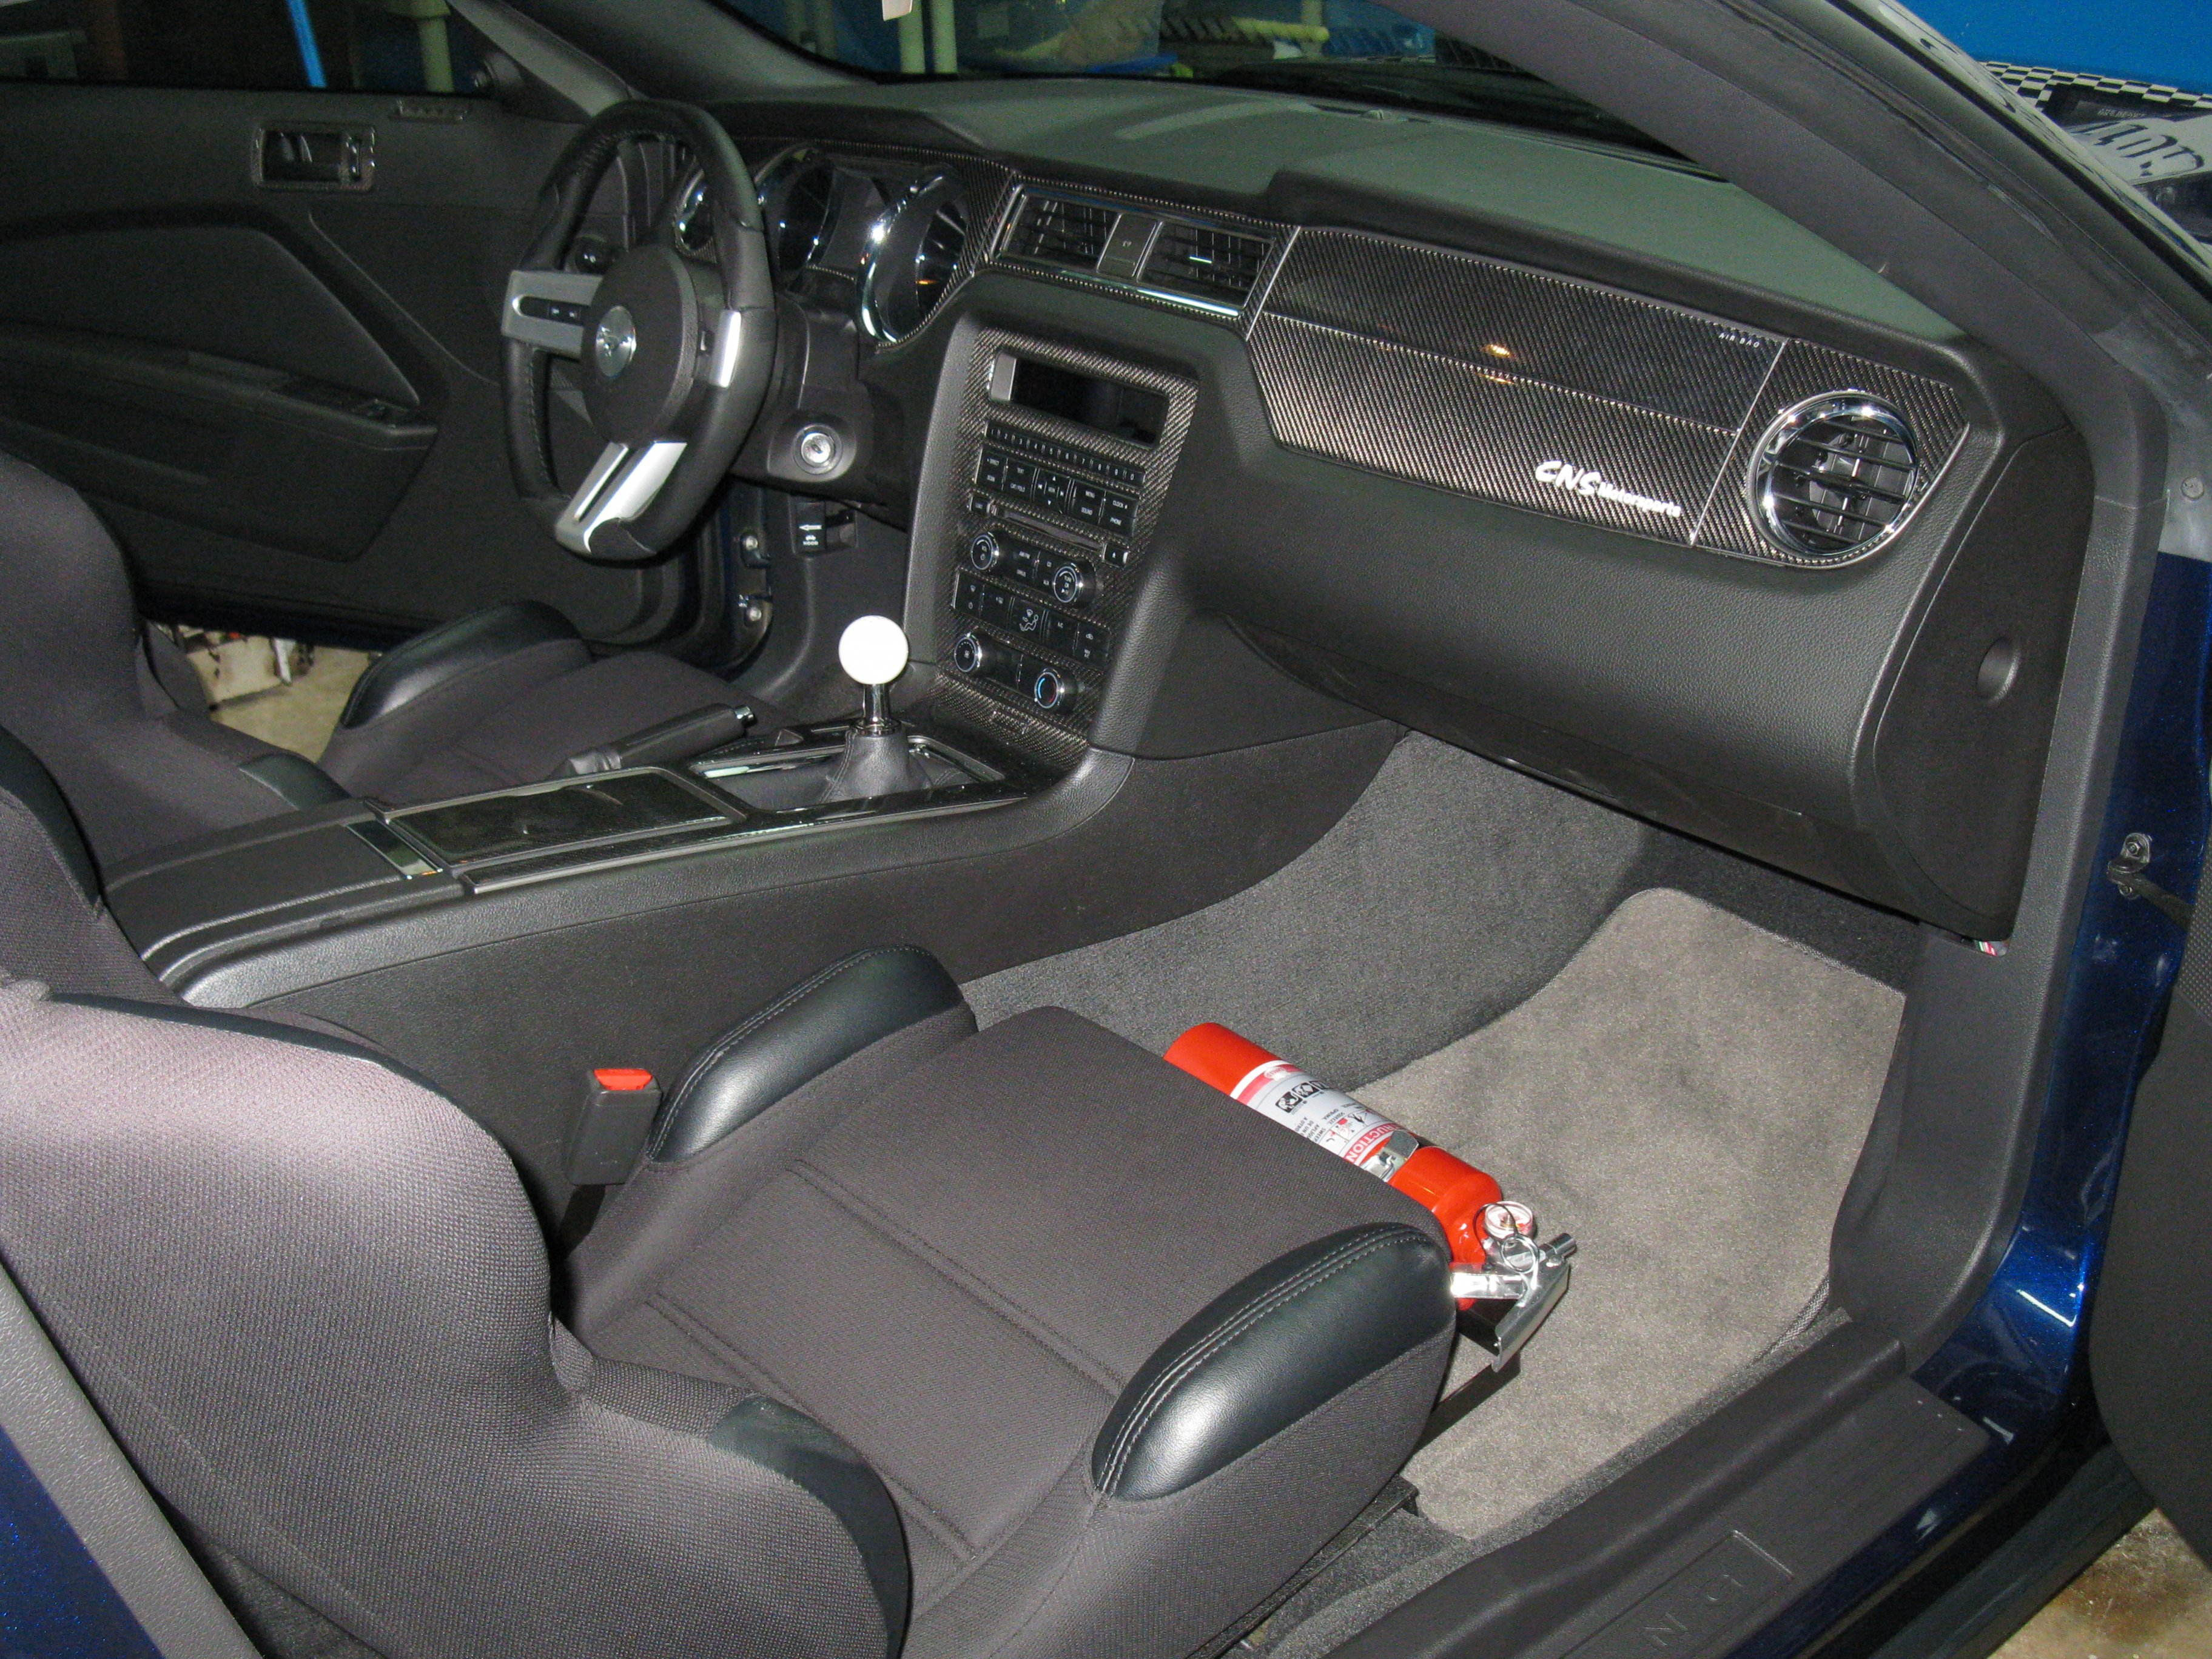 Click image for larger version  Name:Inside of car 001.jpg Views:279 Size:1.99 MB ID:133511